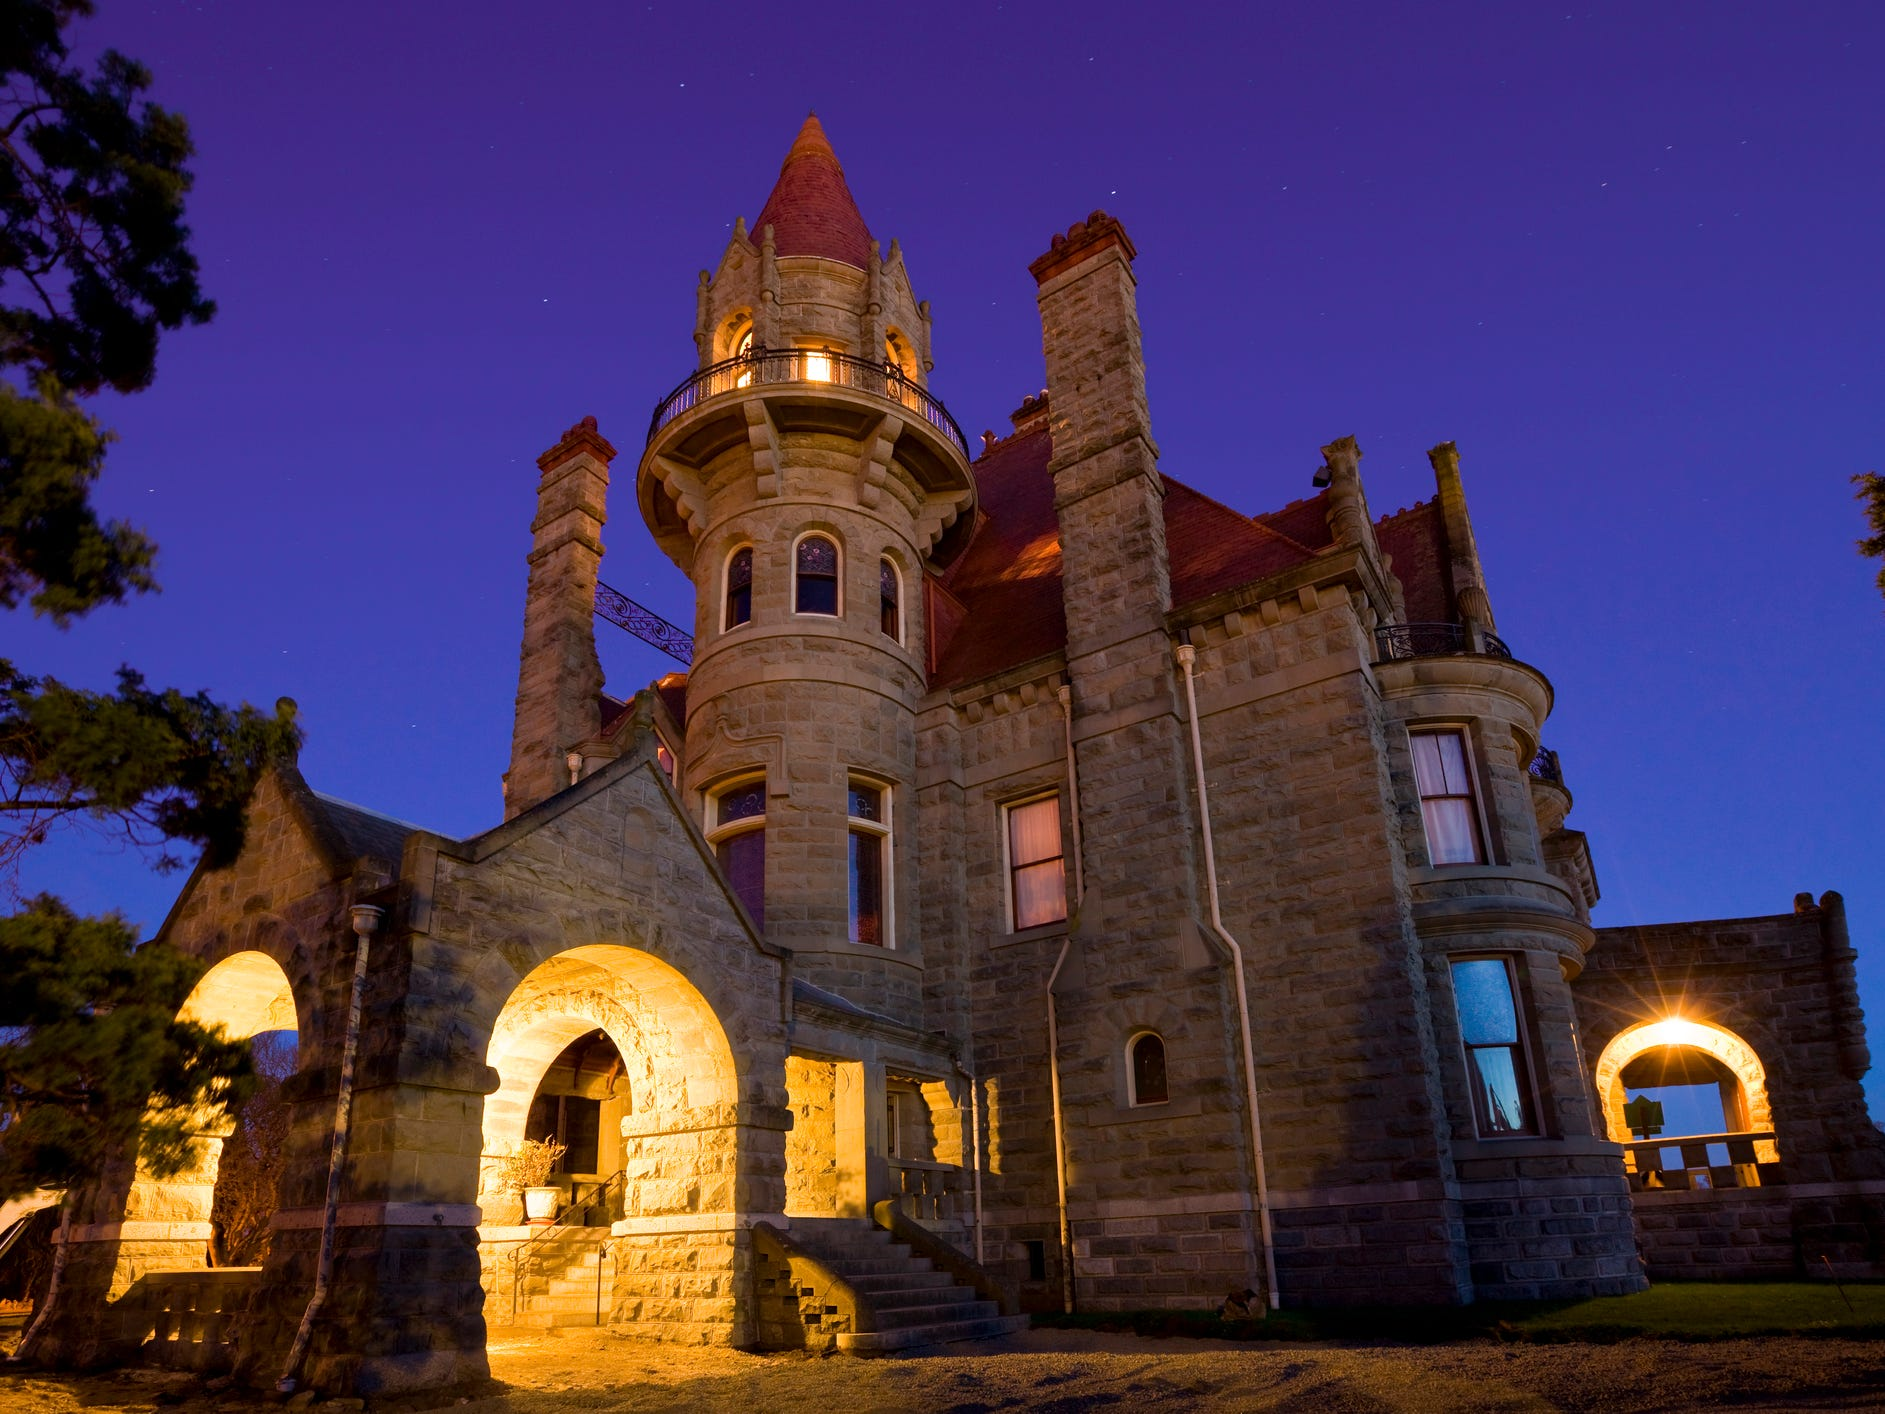 """This Victorian-era mansion is considered """"a bonanza castle,"""" which refers to the massive homes built by wealthy industrial-age tycoons."""